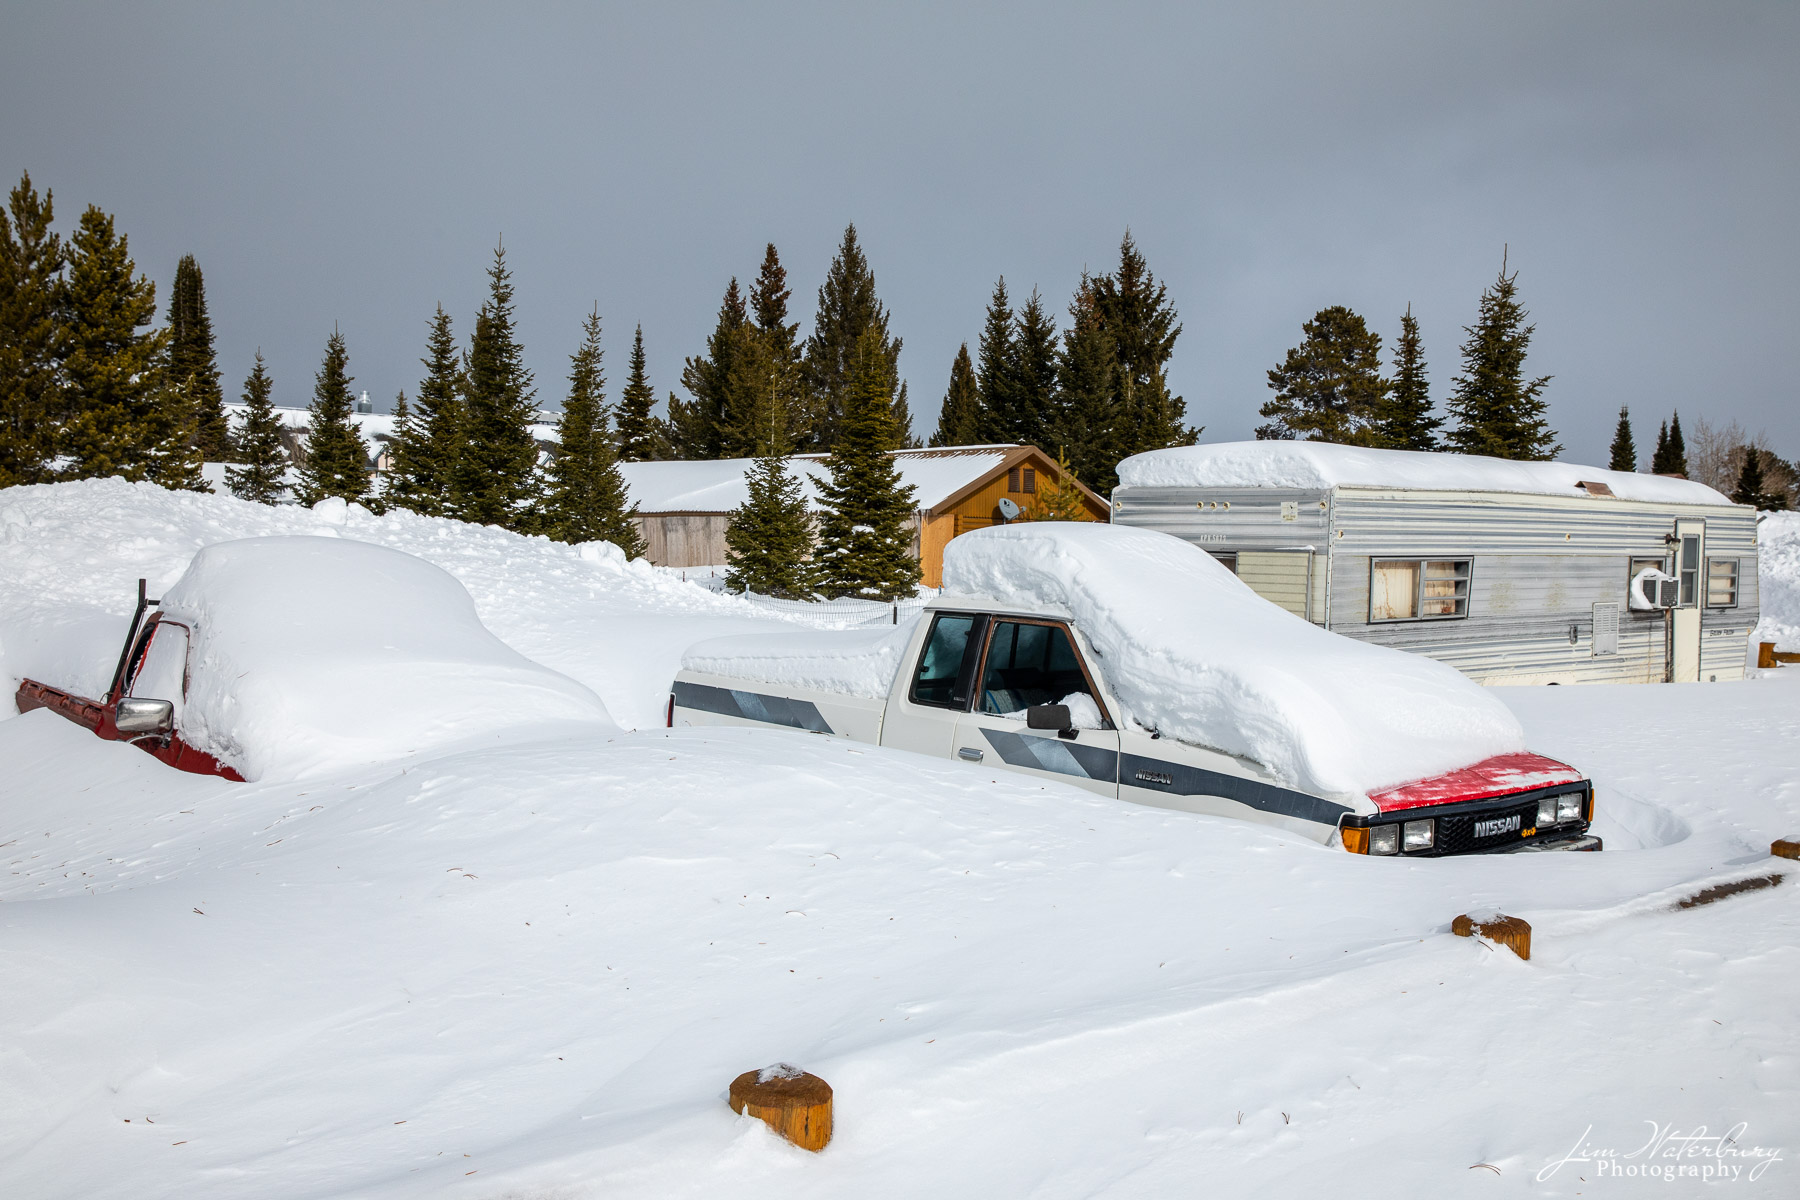 Mobile homes and trucks buried in snow -- consistent with the relative isolation of West Yellowstone in February.